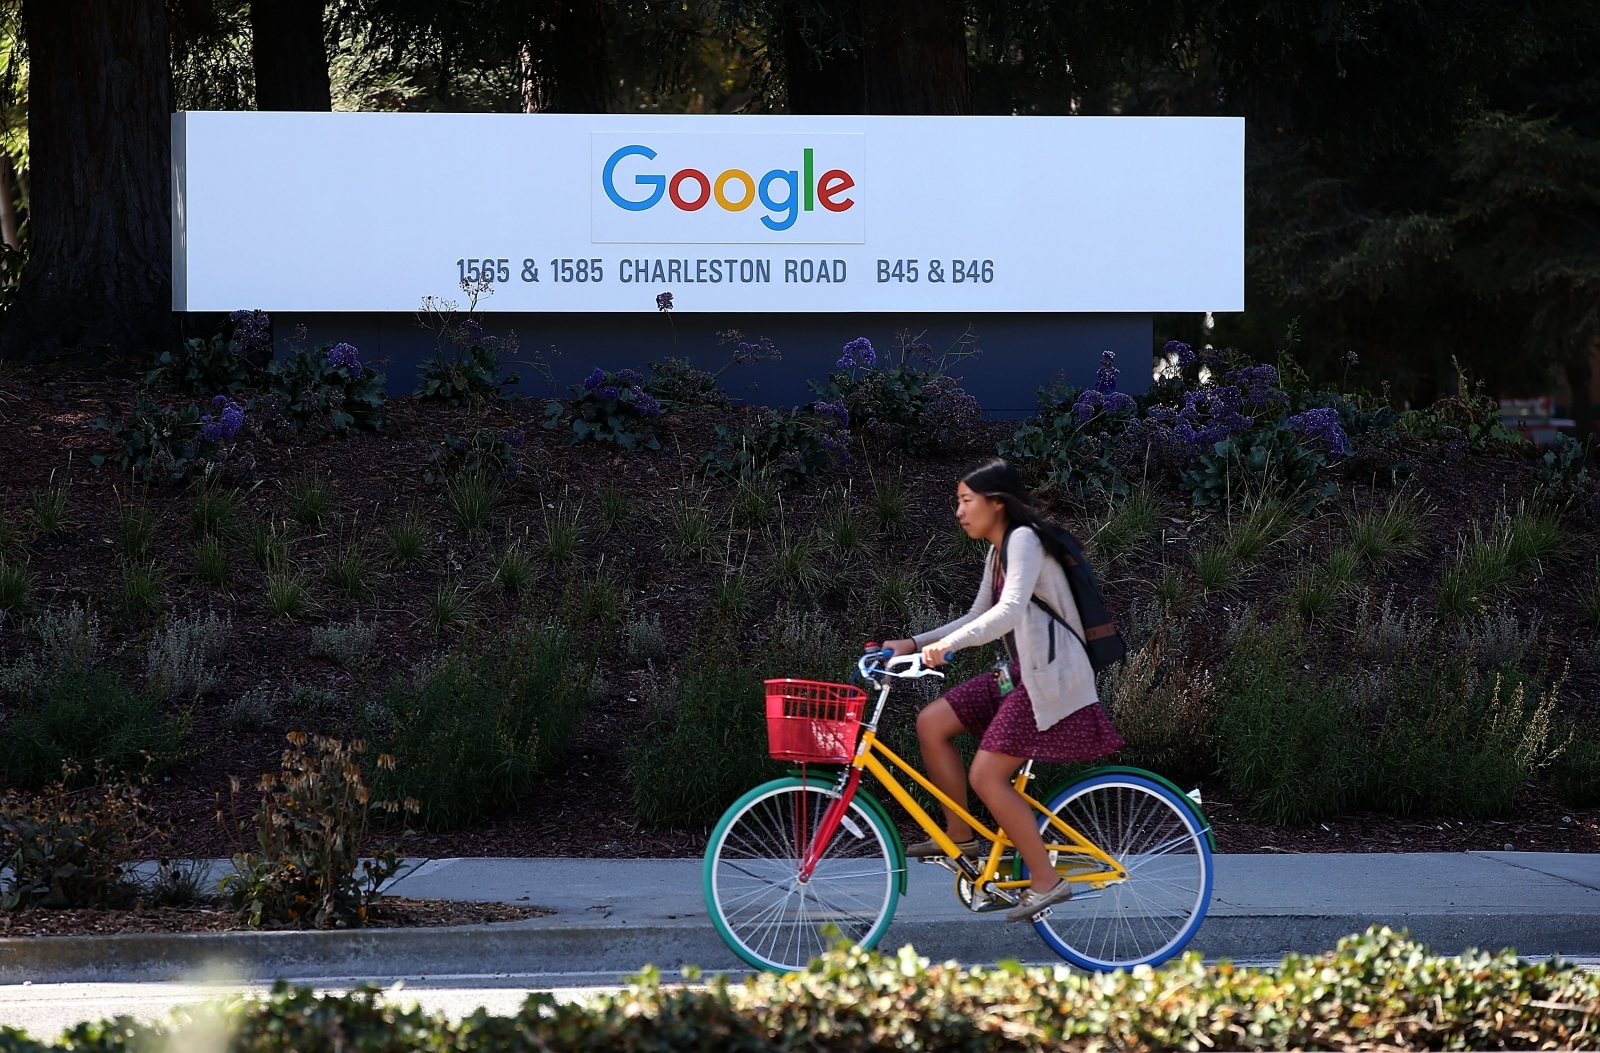 60 former, current employees plan to sue Google over workplace culture